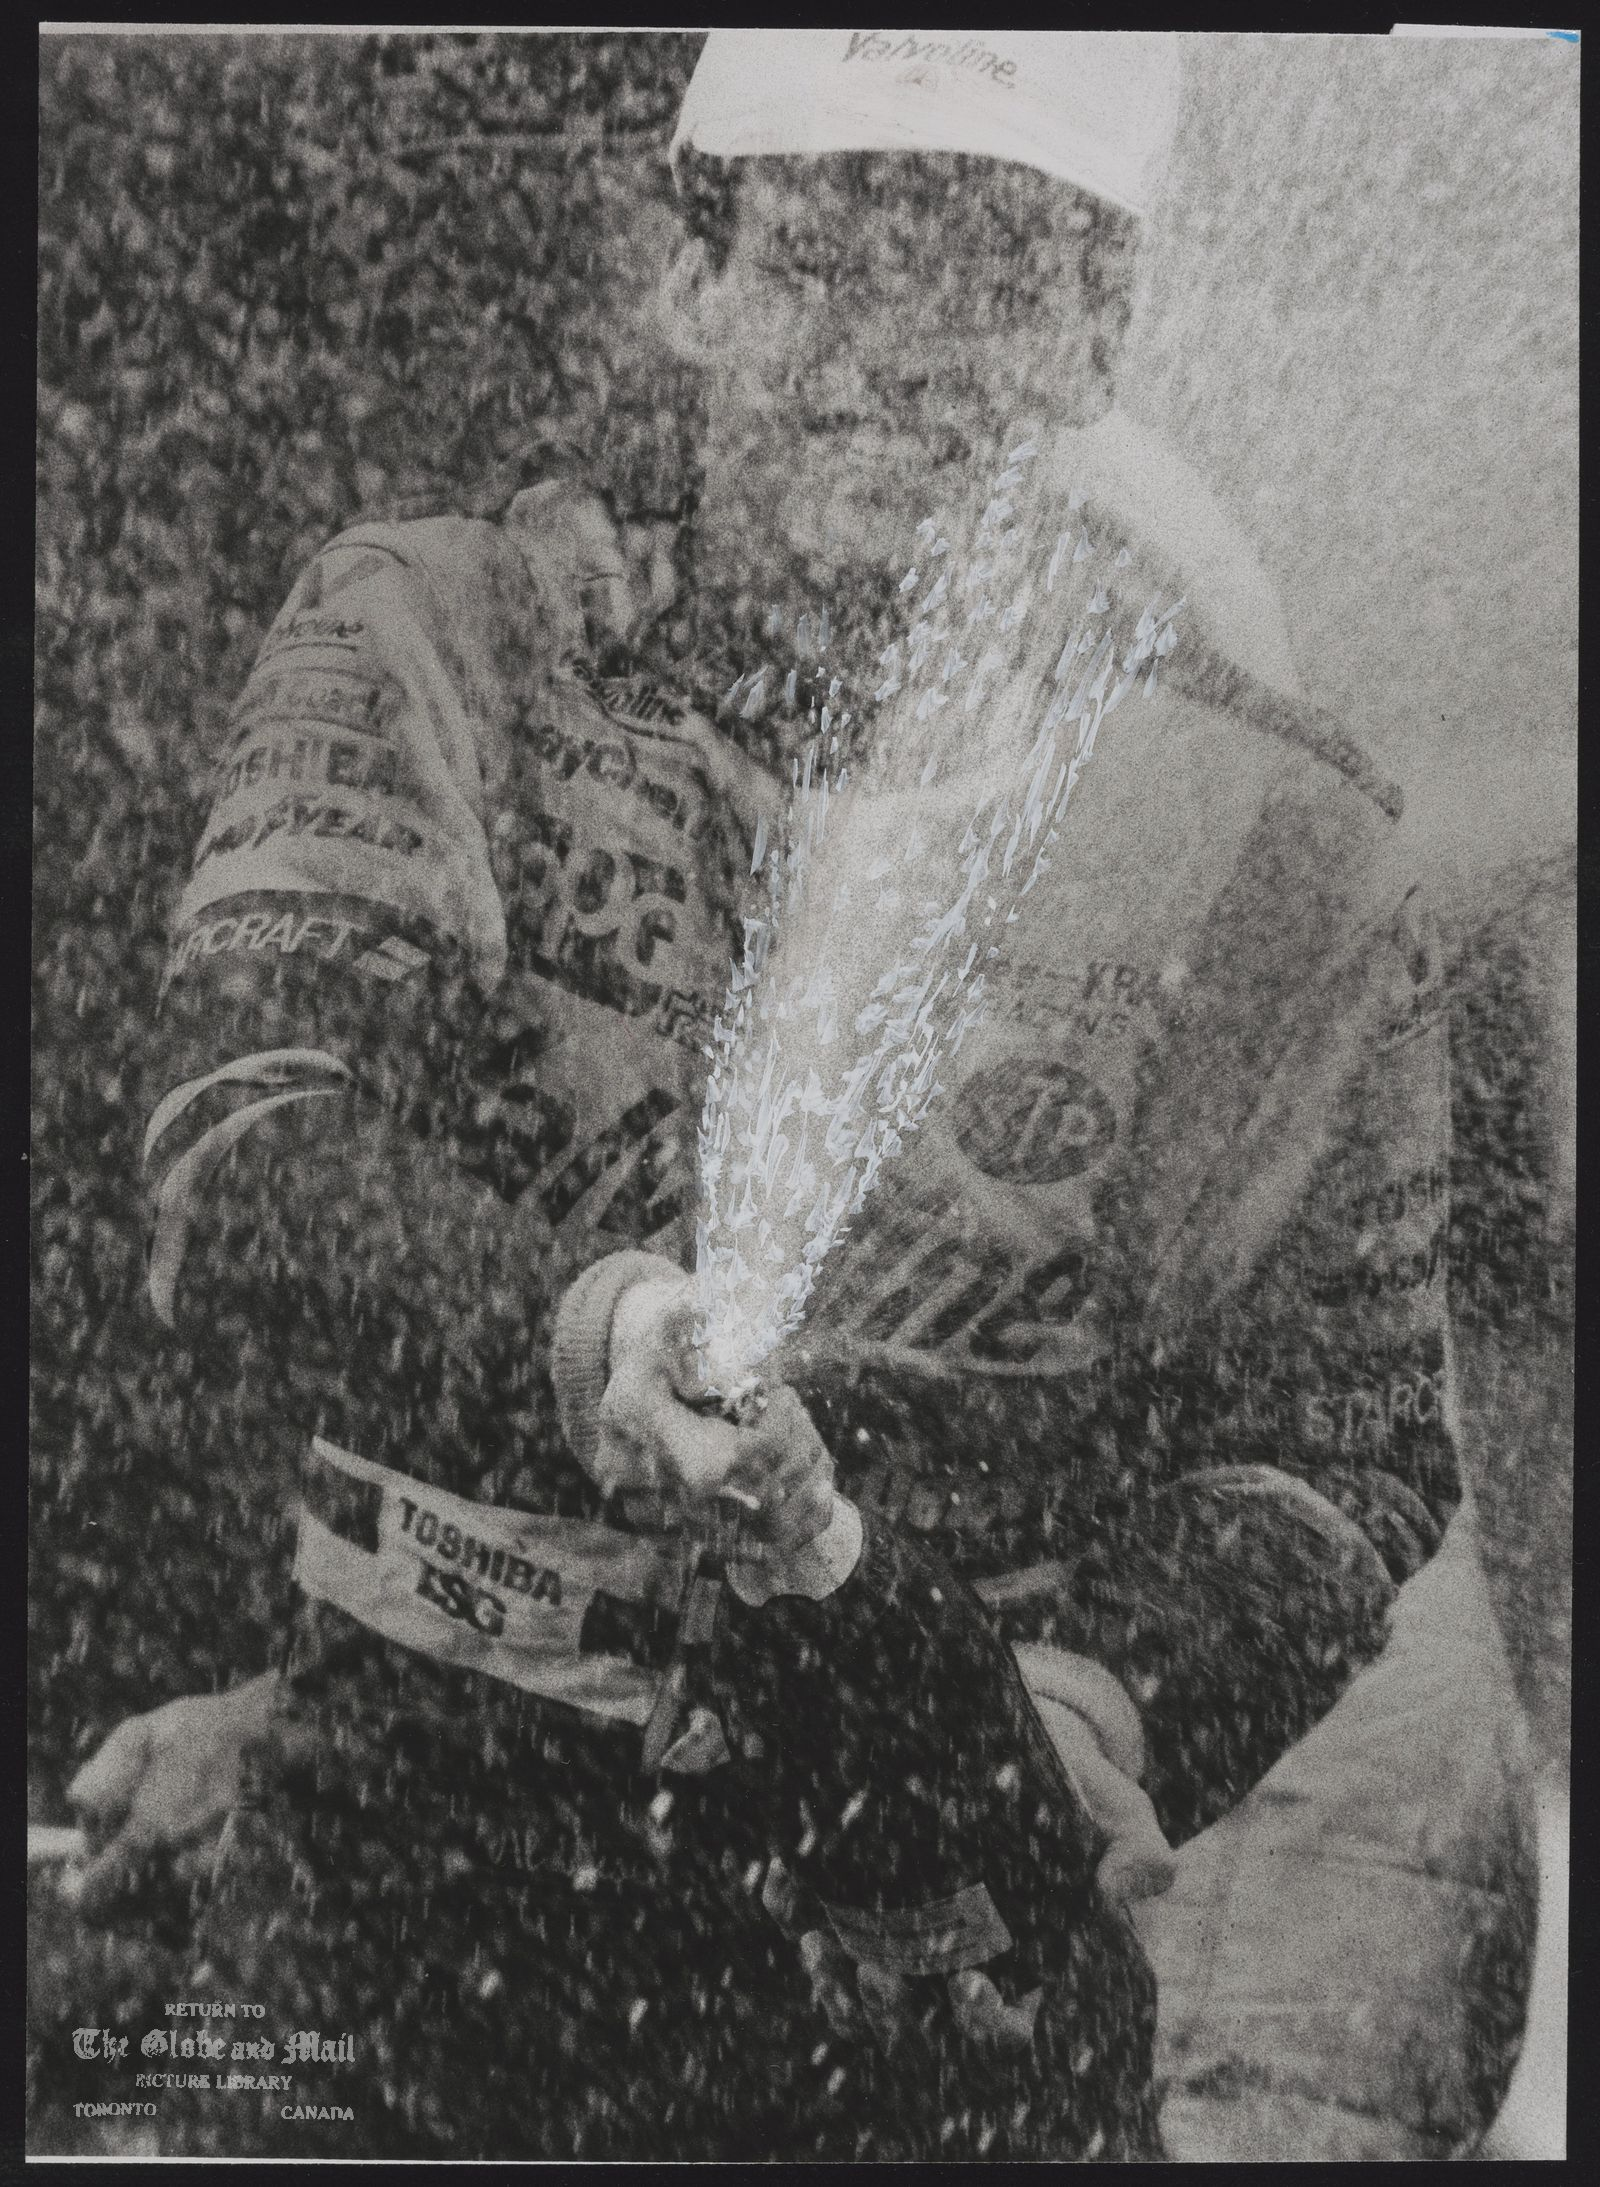 AUTOMOBILE RACING MOLSON INDY AL UNSER CELEBRATES HIS VICTORY YESTERDAY IN TORONTO AT THE MOLSON INDY CAR RACE. HE IS THE FIRST-TWO-TIME WINNER OF THE 5-YEAR OLD EVENT.